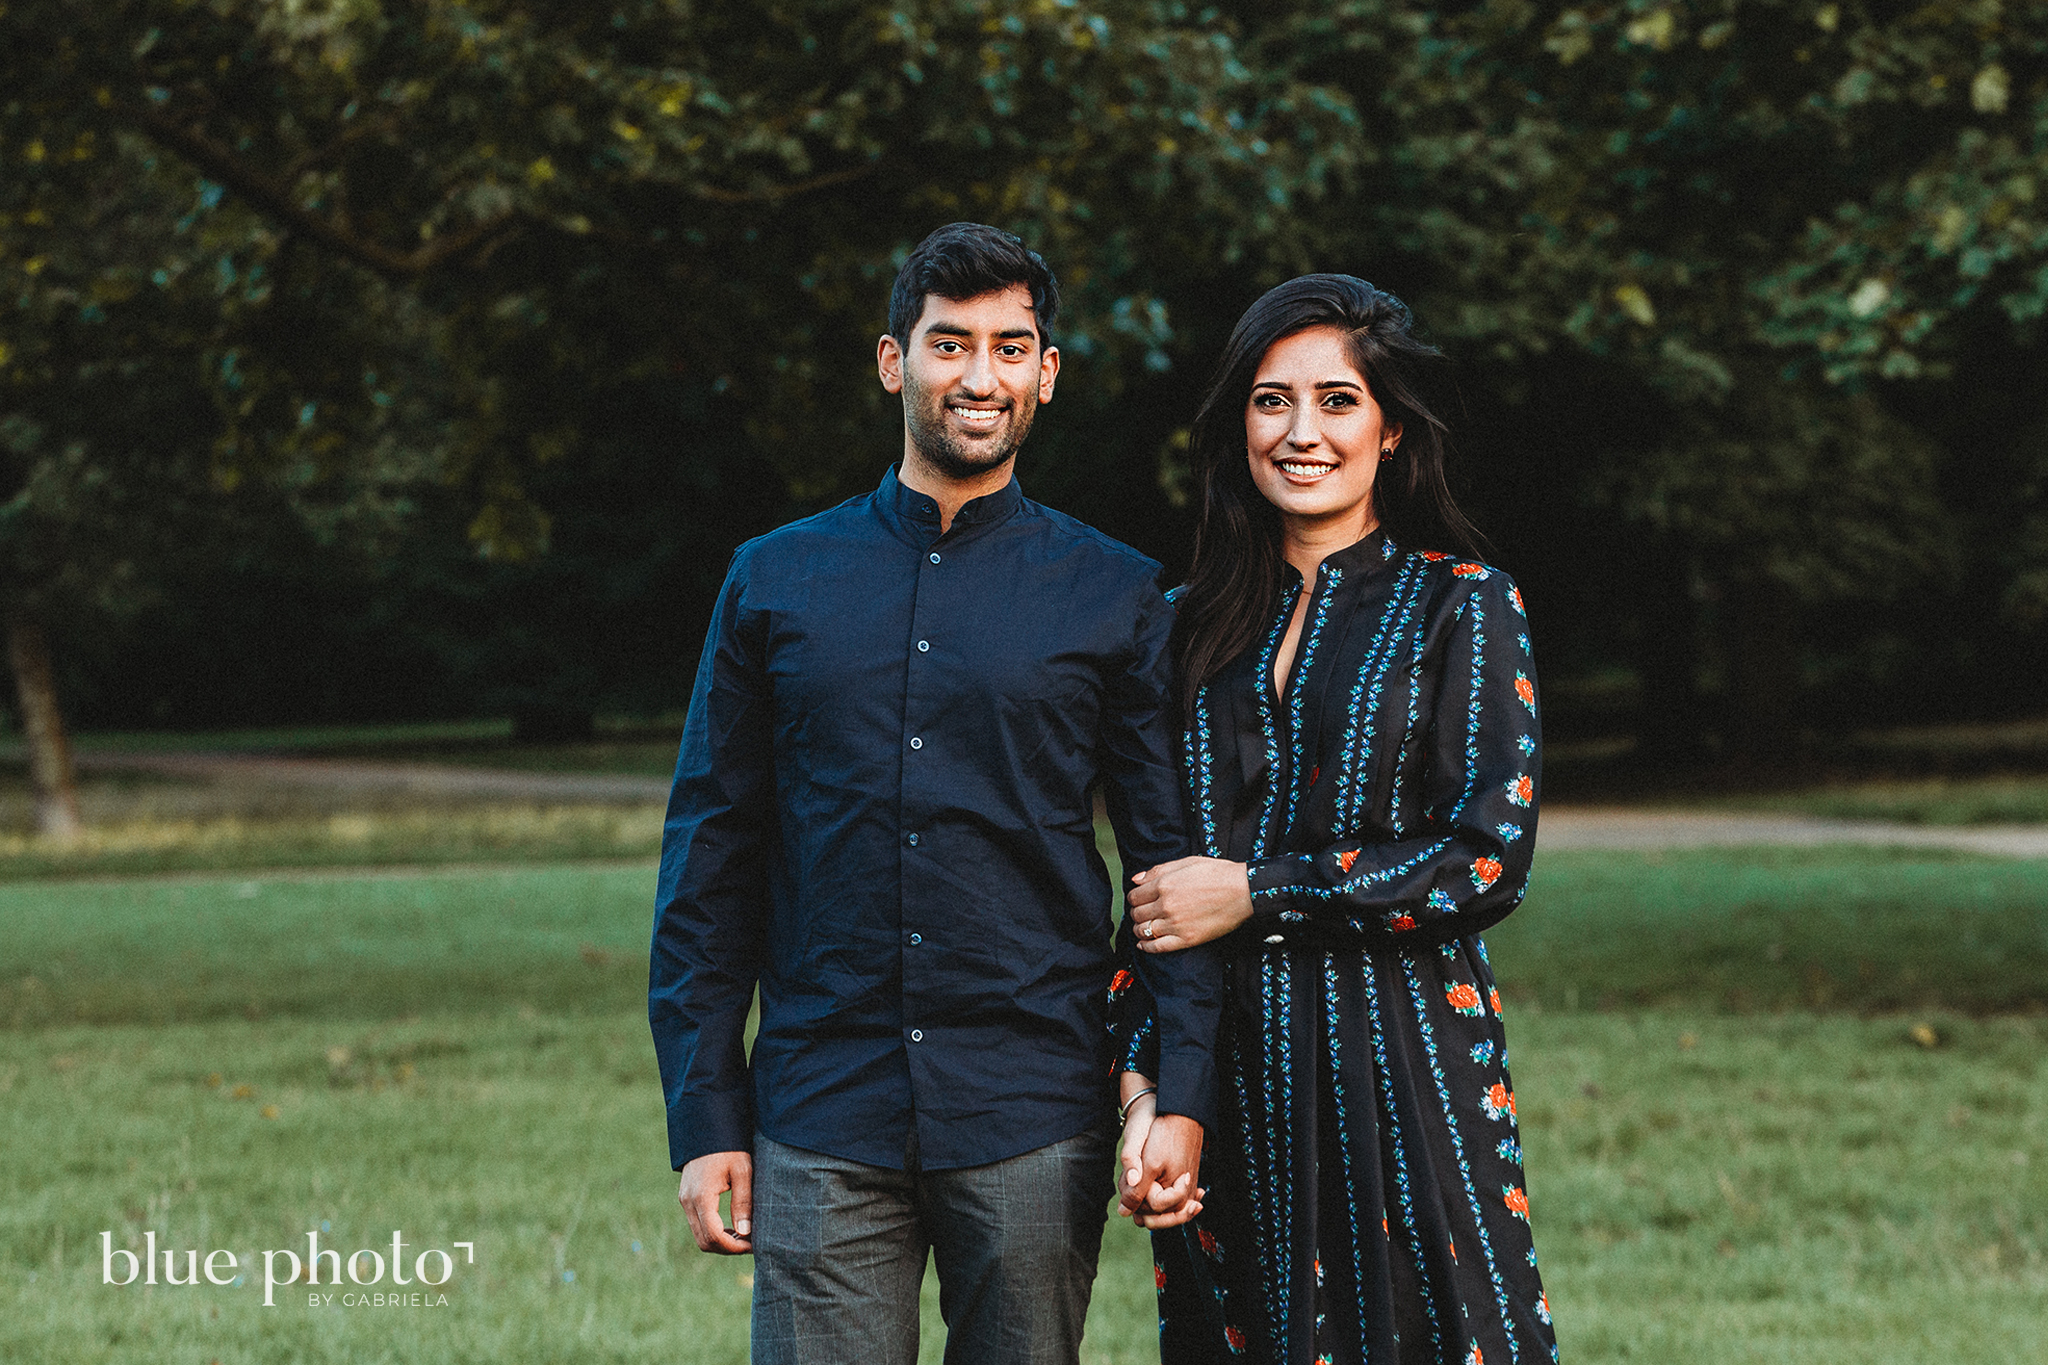 Engagement session in Kensingtom Gardens, Central London. A couple is smilling.